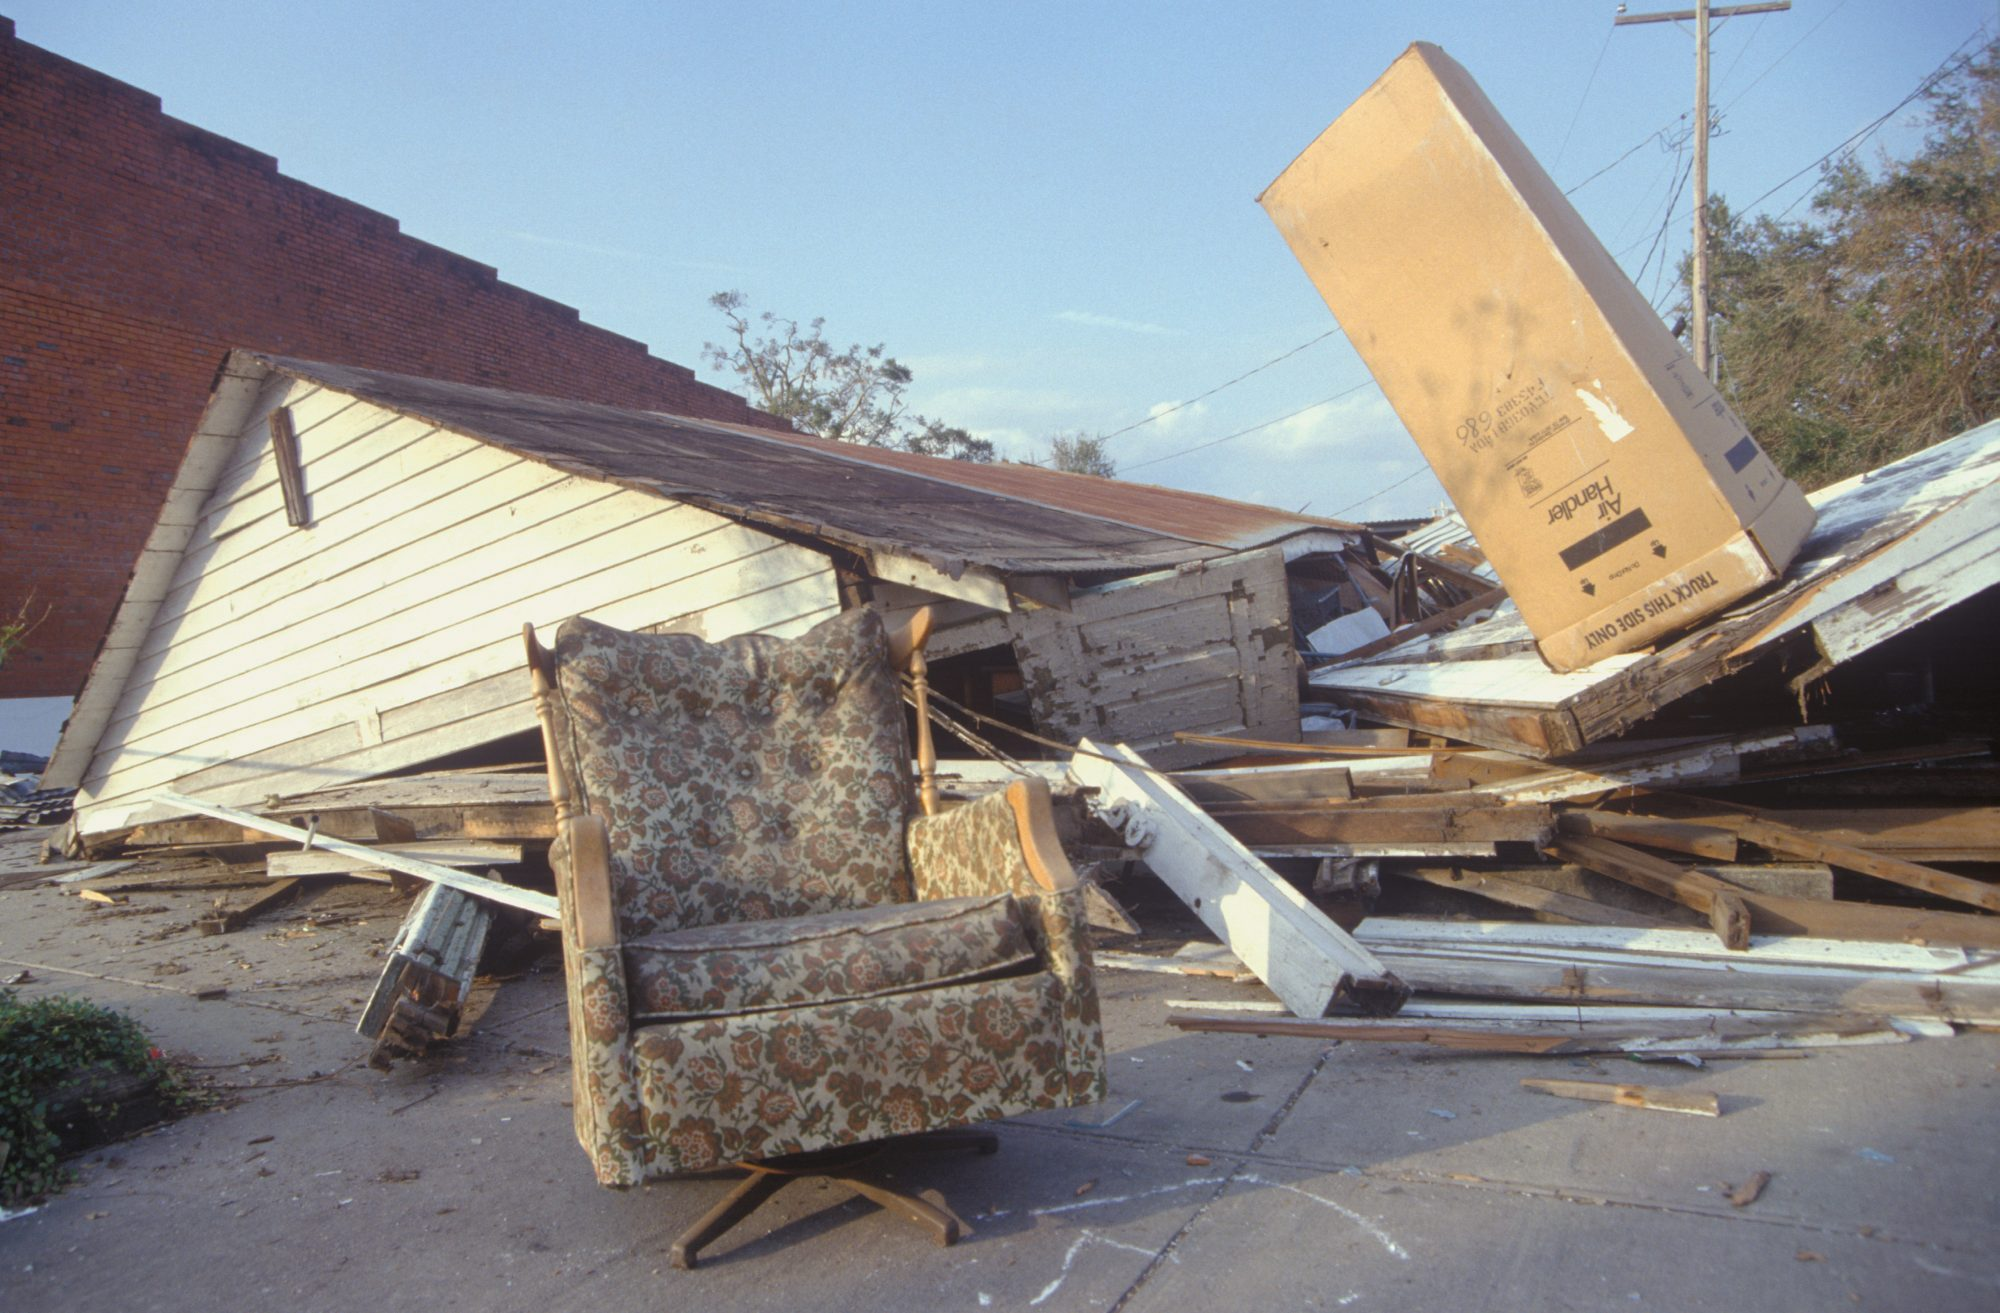 As a relatively small hurricane, Andrew still packed a punch: When it made landfall on Florida's southeastern coast, it was estimated to be a Category 5 hurricane, though it had weakened to a Category 3 by the time it hit Louisiana's coastline. What made Andrew dangerous were its extreme wind speeds. About 127,000 homes in Florida were damaged by these winds, leading to an estimated total cost of $26.5 billion, then the costliest natural disaster in U.S. history.